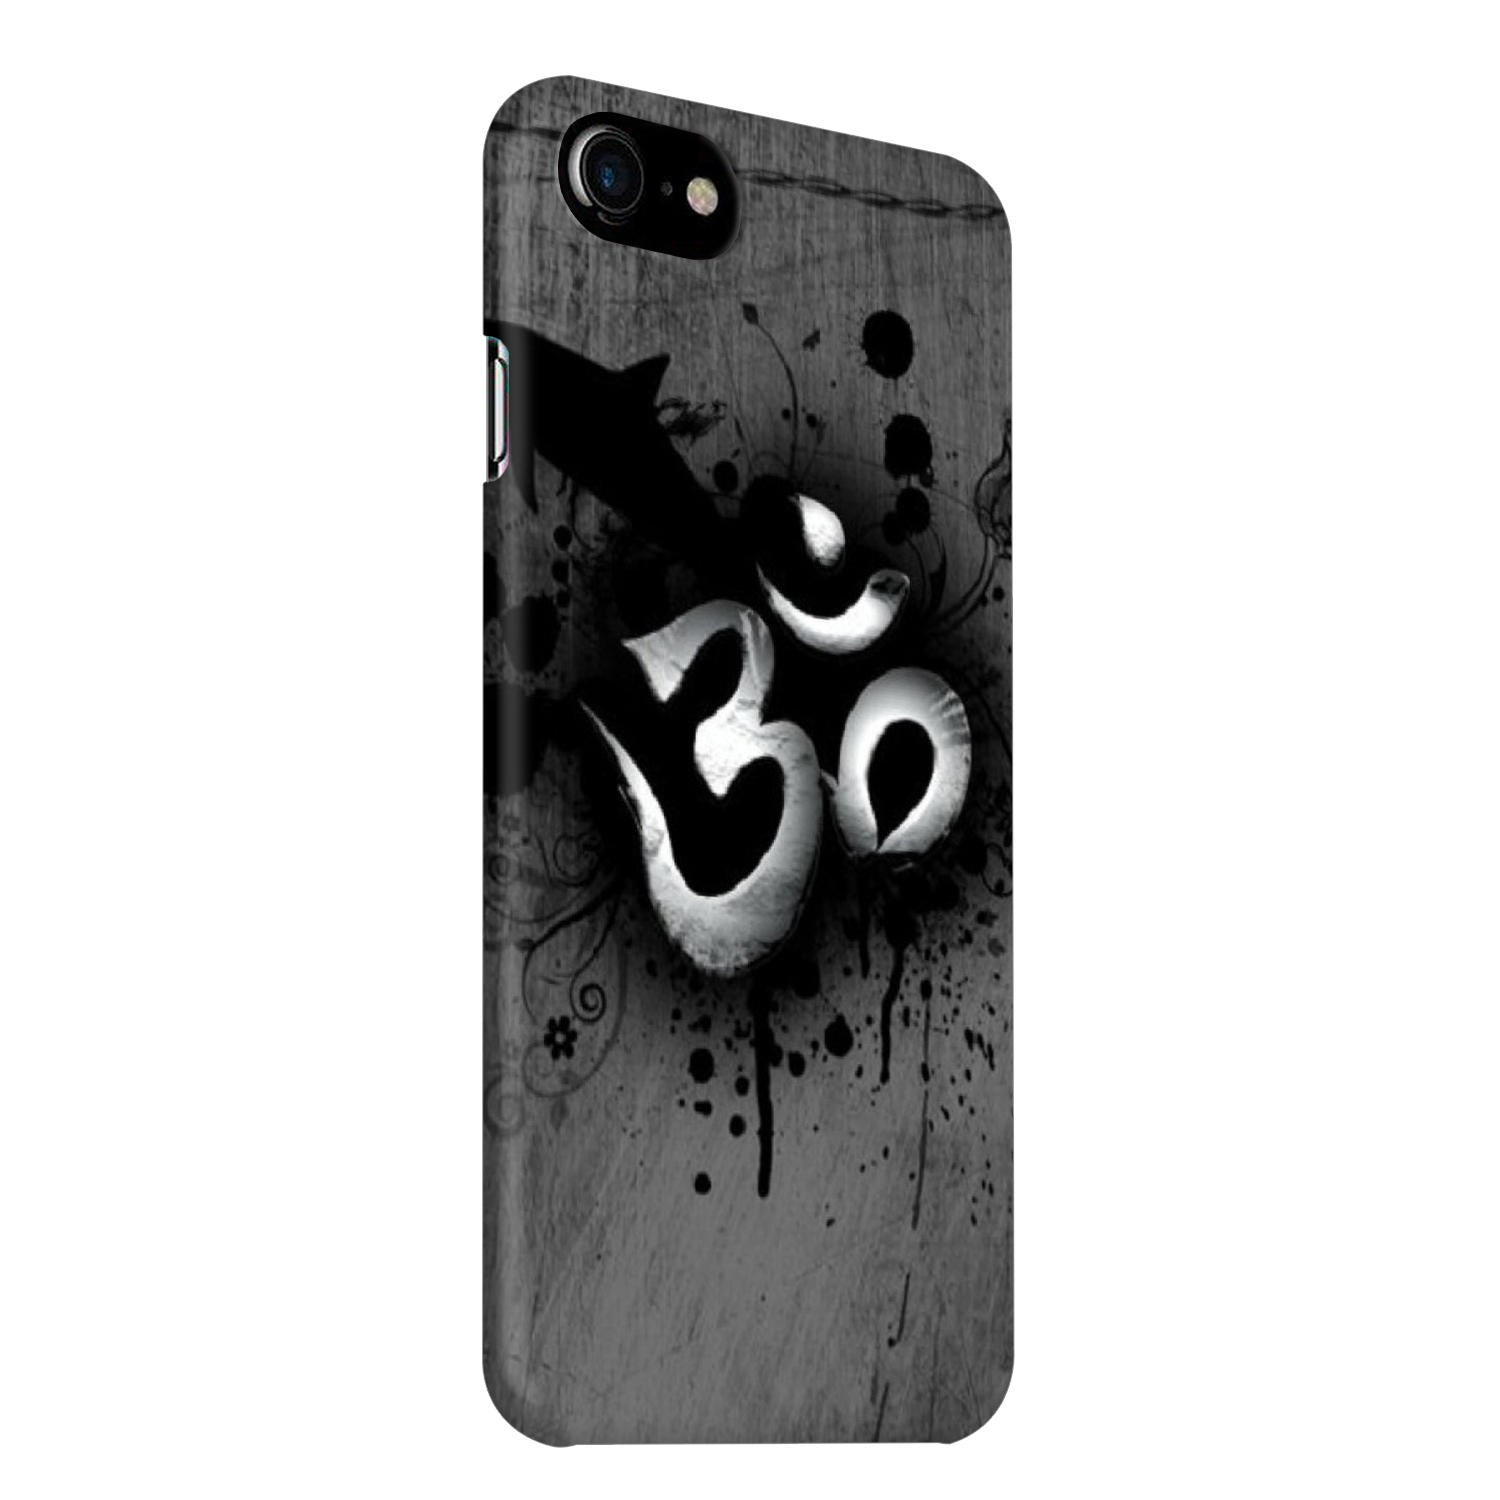 Om Shiva iPhone 7 Mobile Cover Case - MADANYU